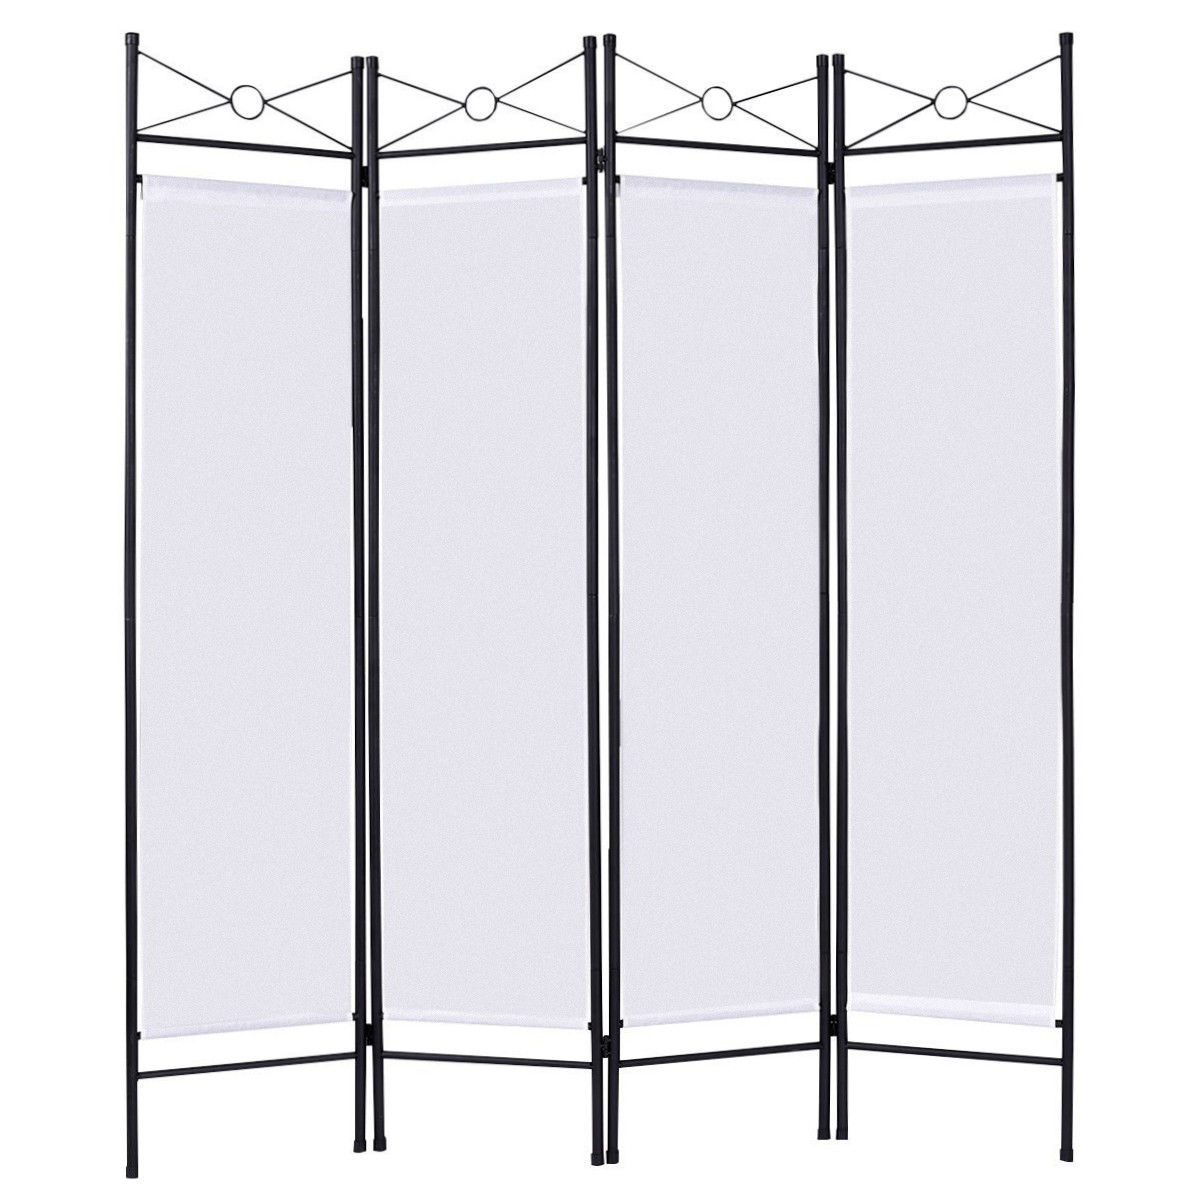 Costway Costway White 4 Panel Room Divider Privacy Screen Home